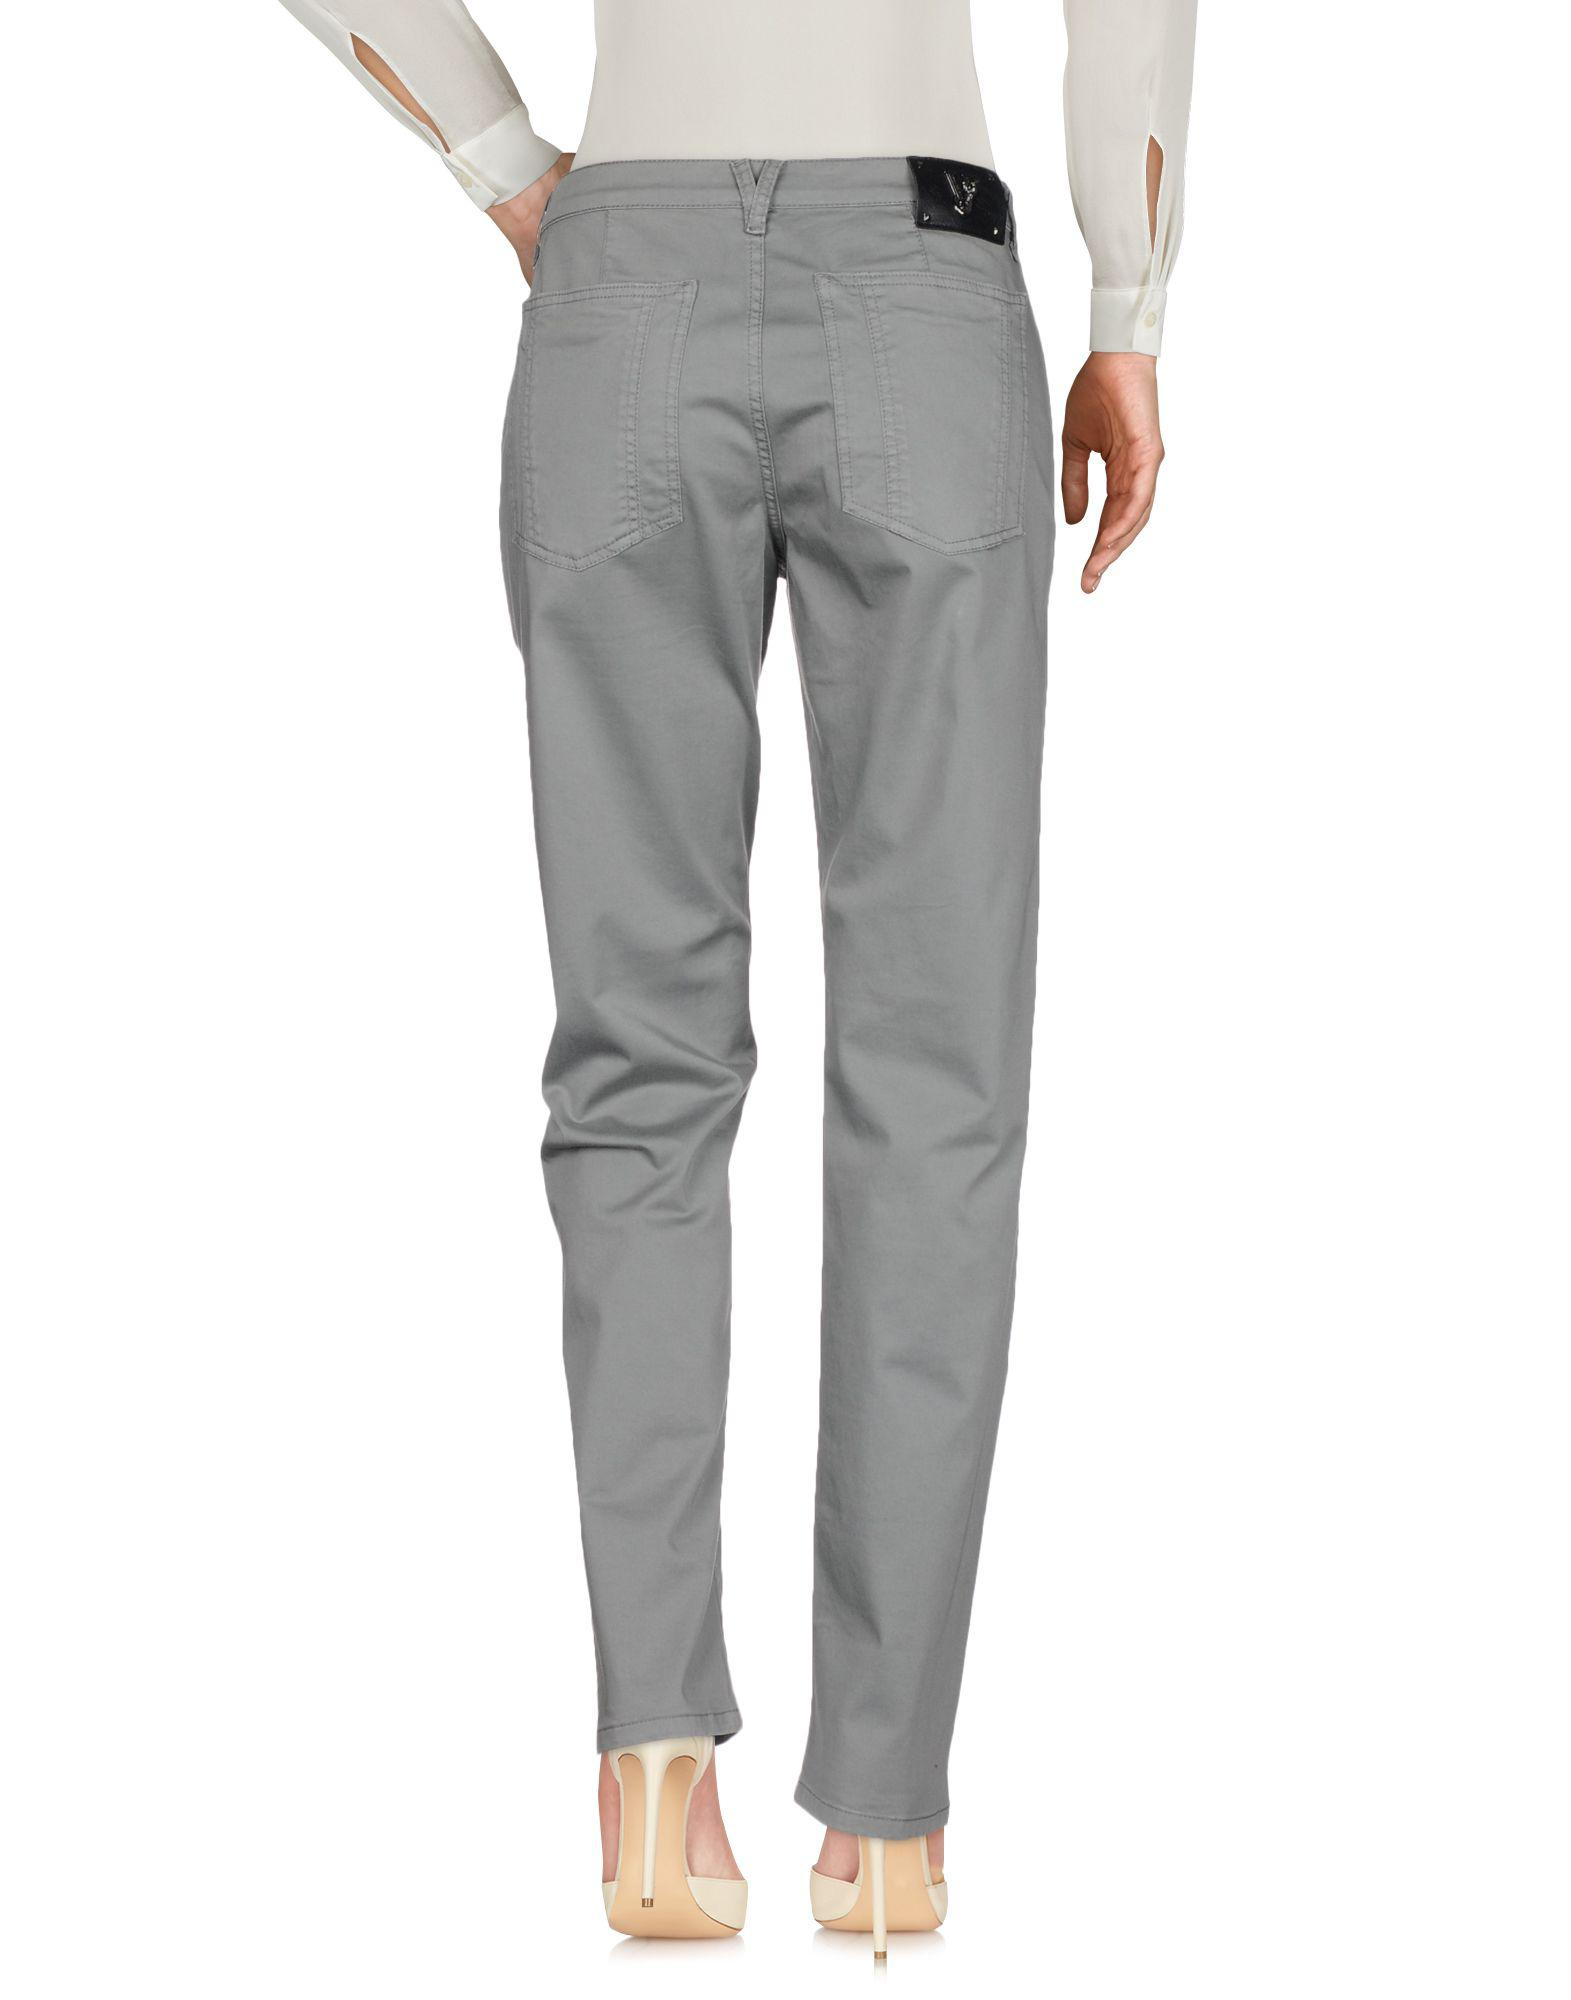 Versace Jeans Couture Cotton Casual Trouser in Grey (Grey)